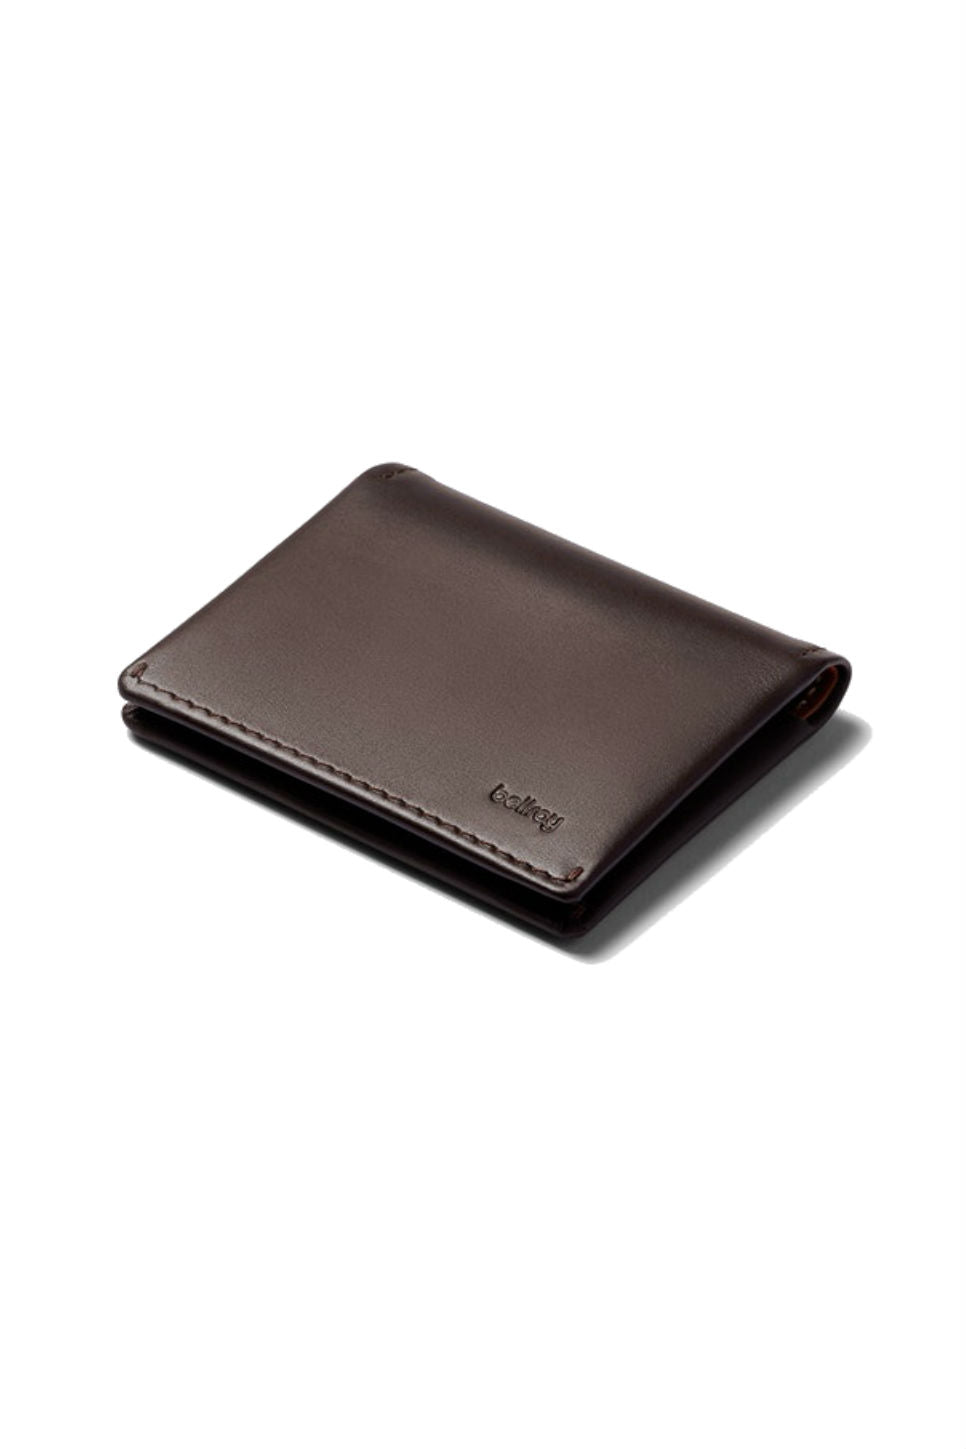 Bellroy - Slim Sleeve - Java